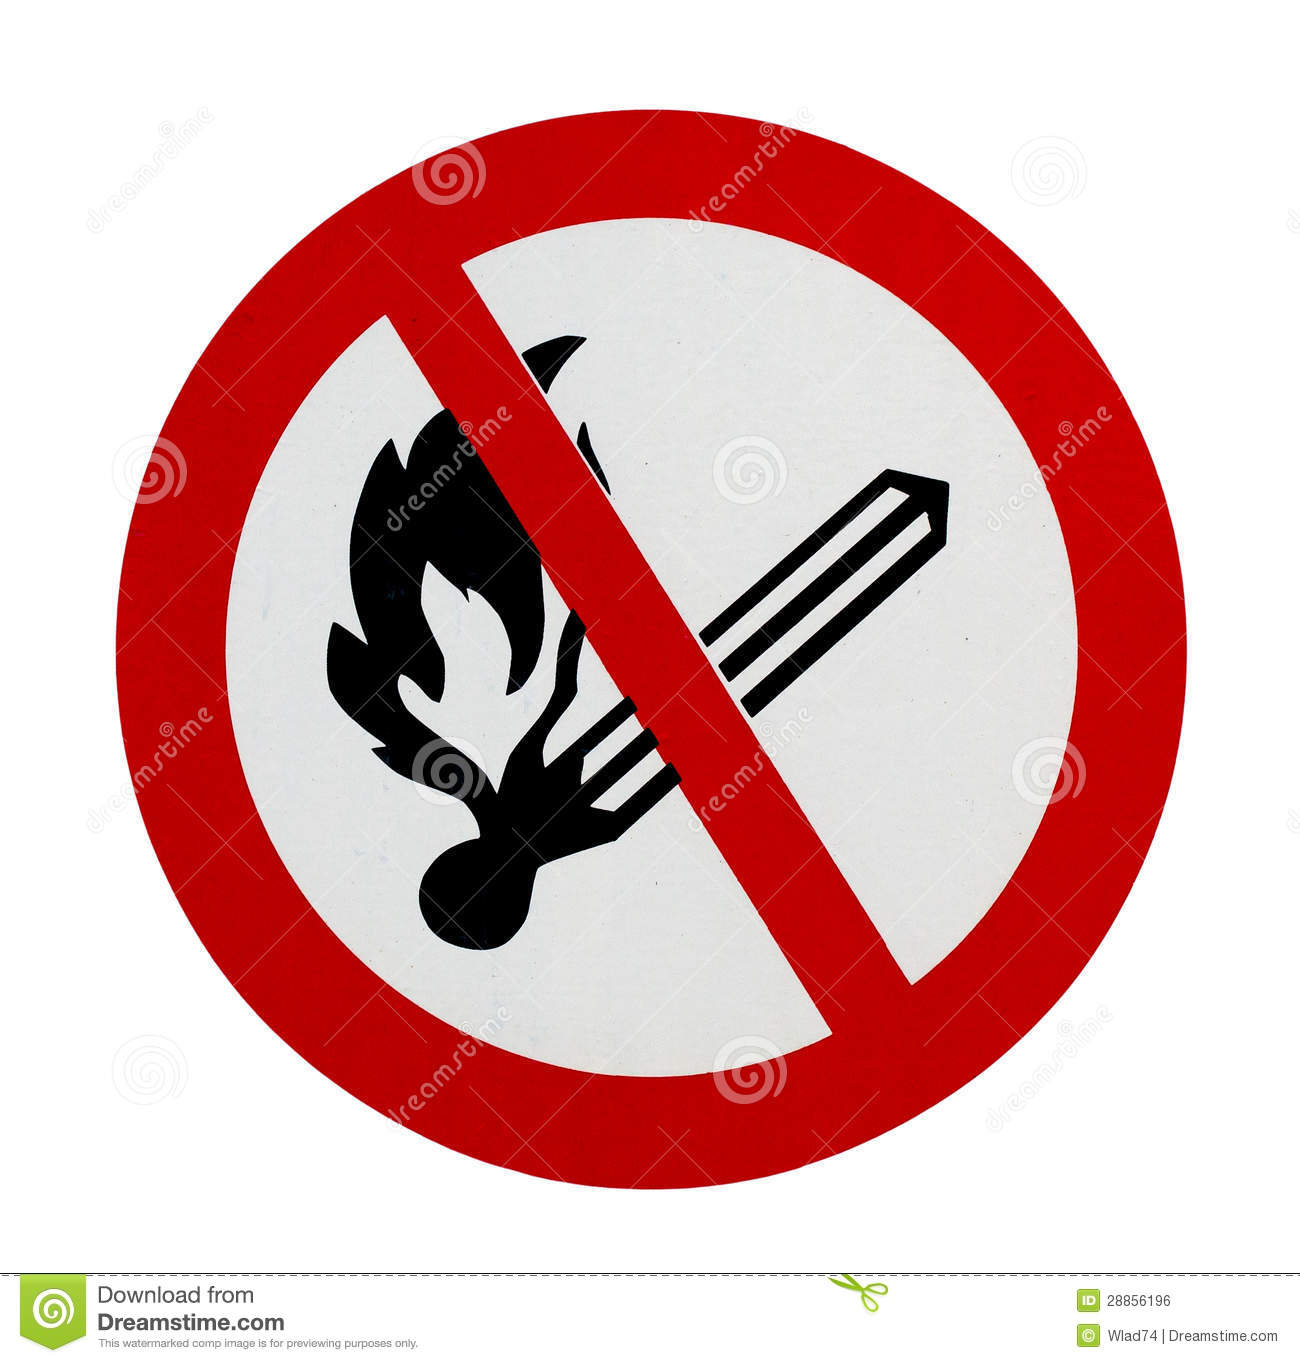 No naked light sign - Signs 2 Safety